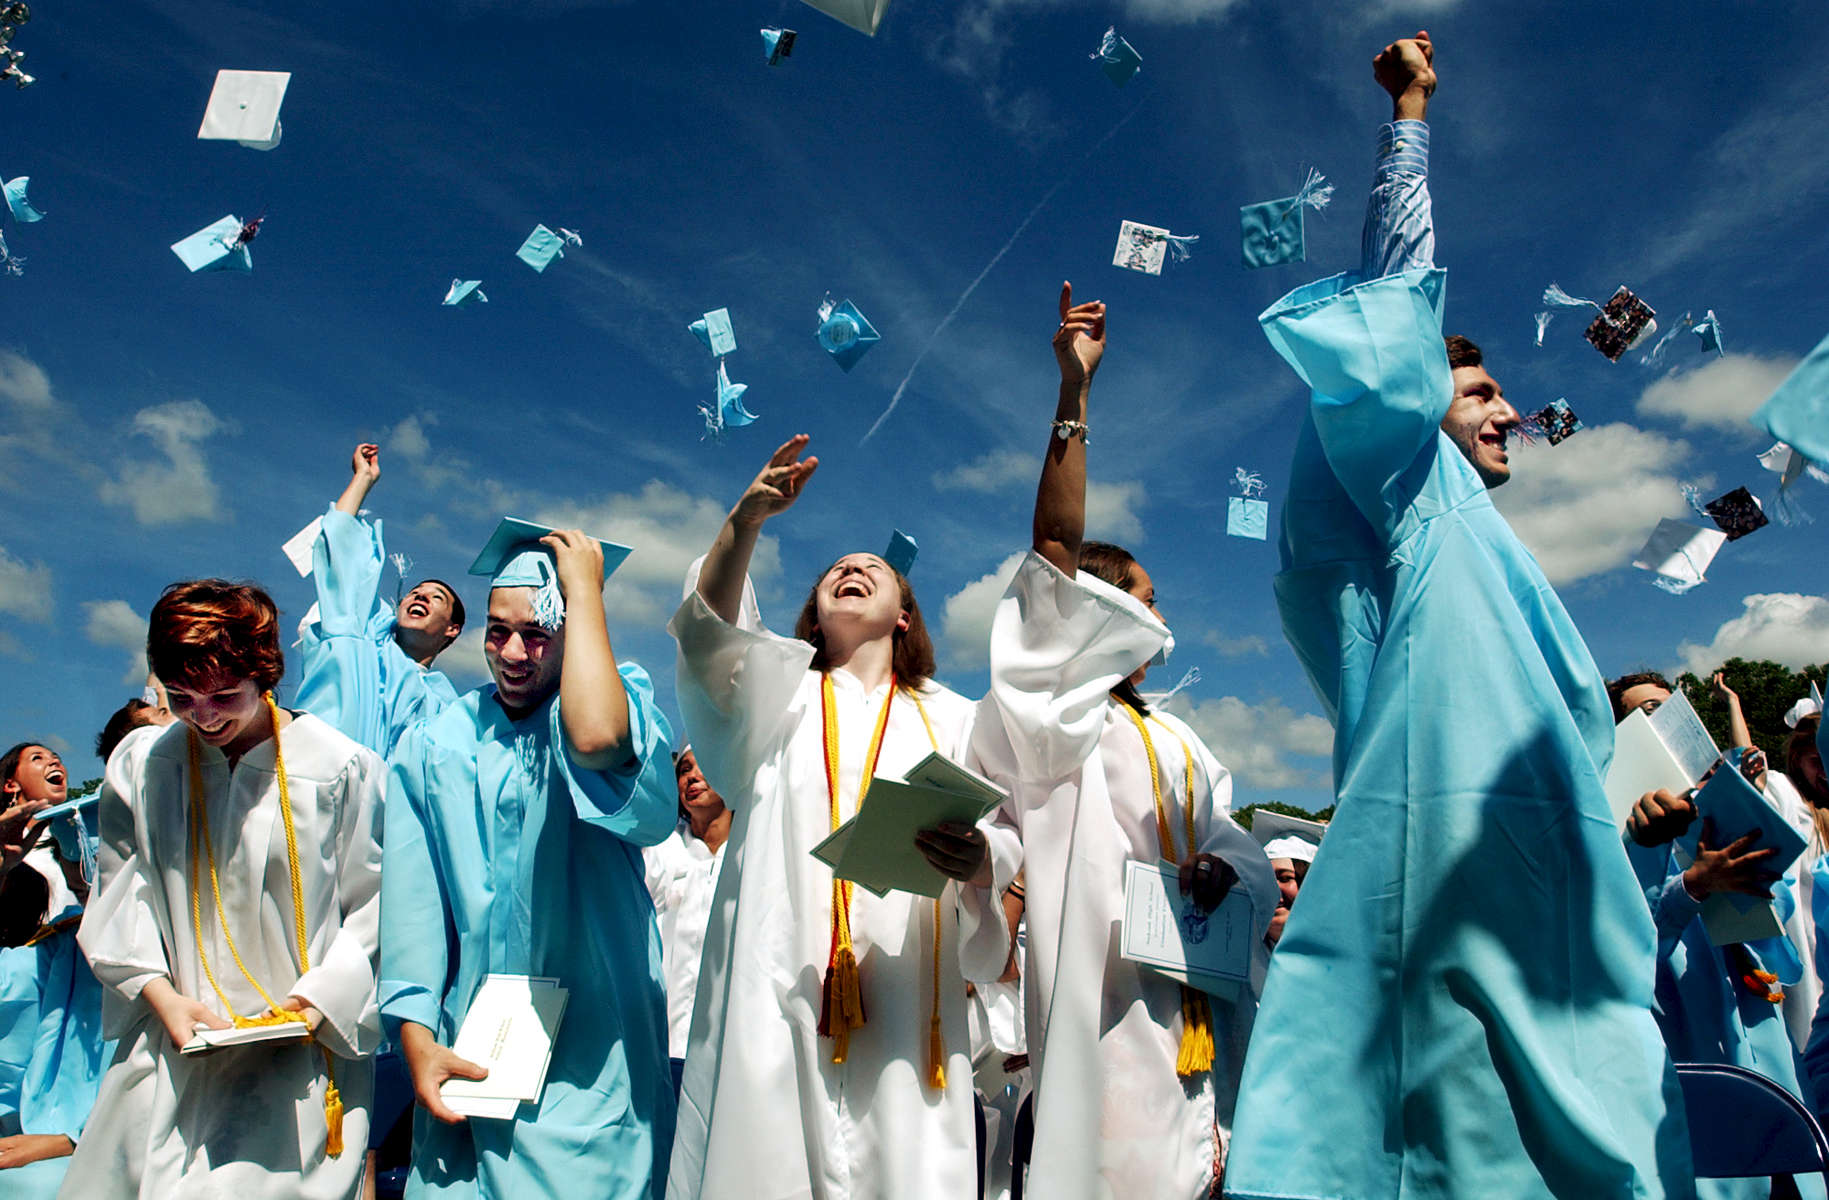 The Seekonk High School graduating class of 2007 tosses their caps into the sky at the closing of commencement on Sunday, June 18, 2007.